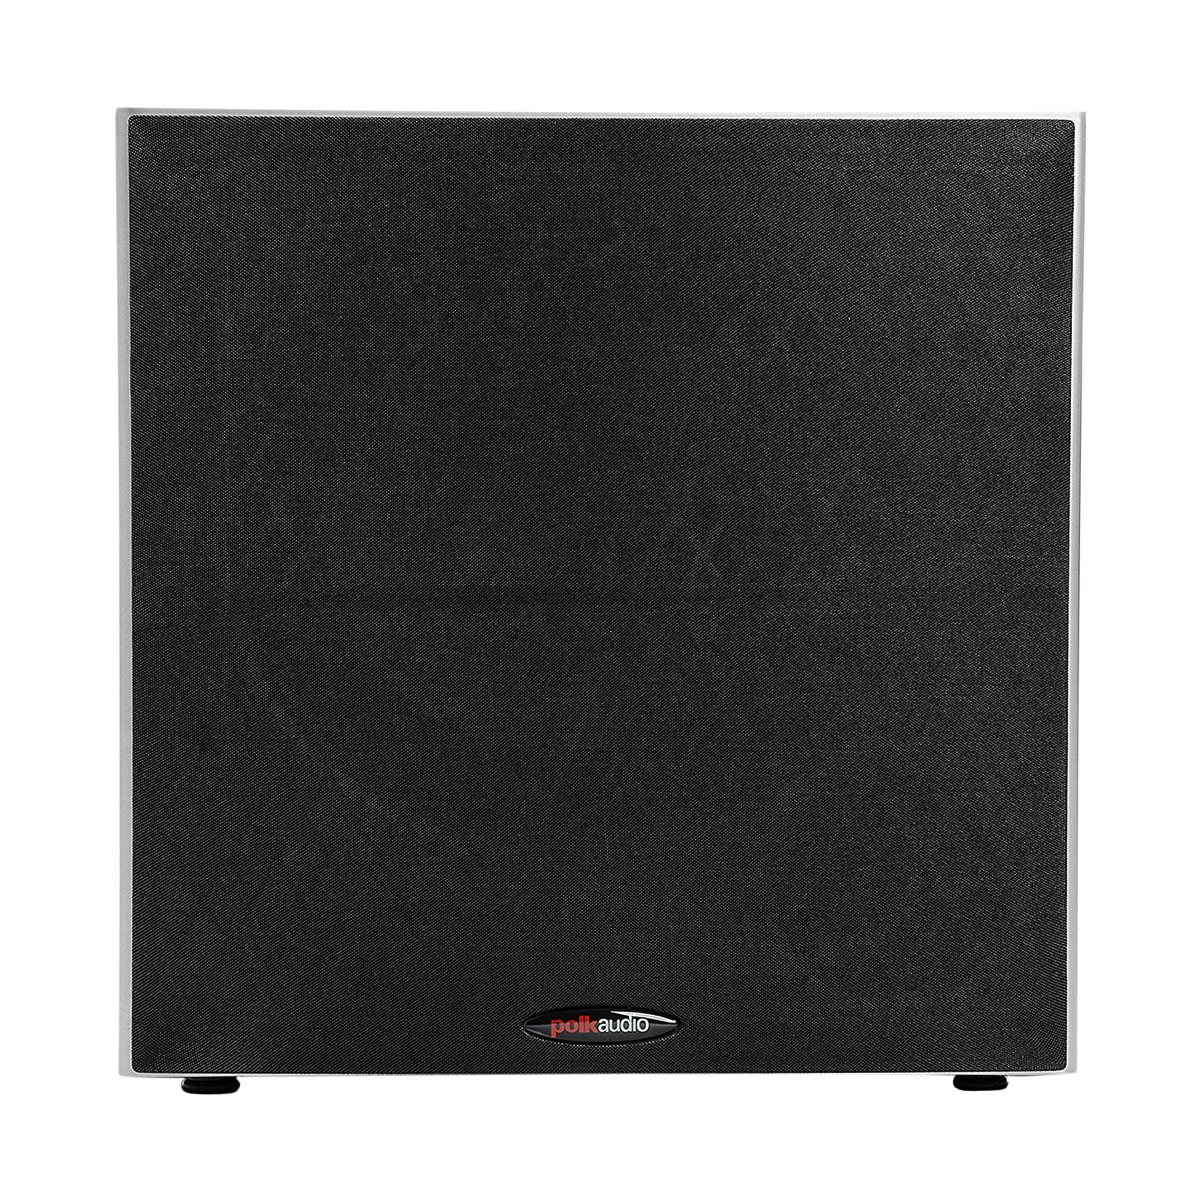 Polk Audio PSW-10 - Subwoofer - AVStore